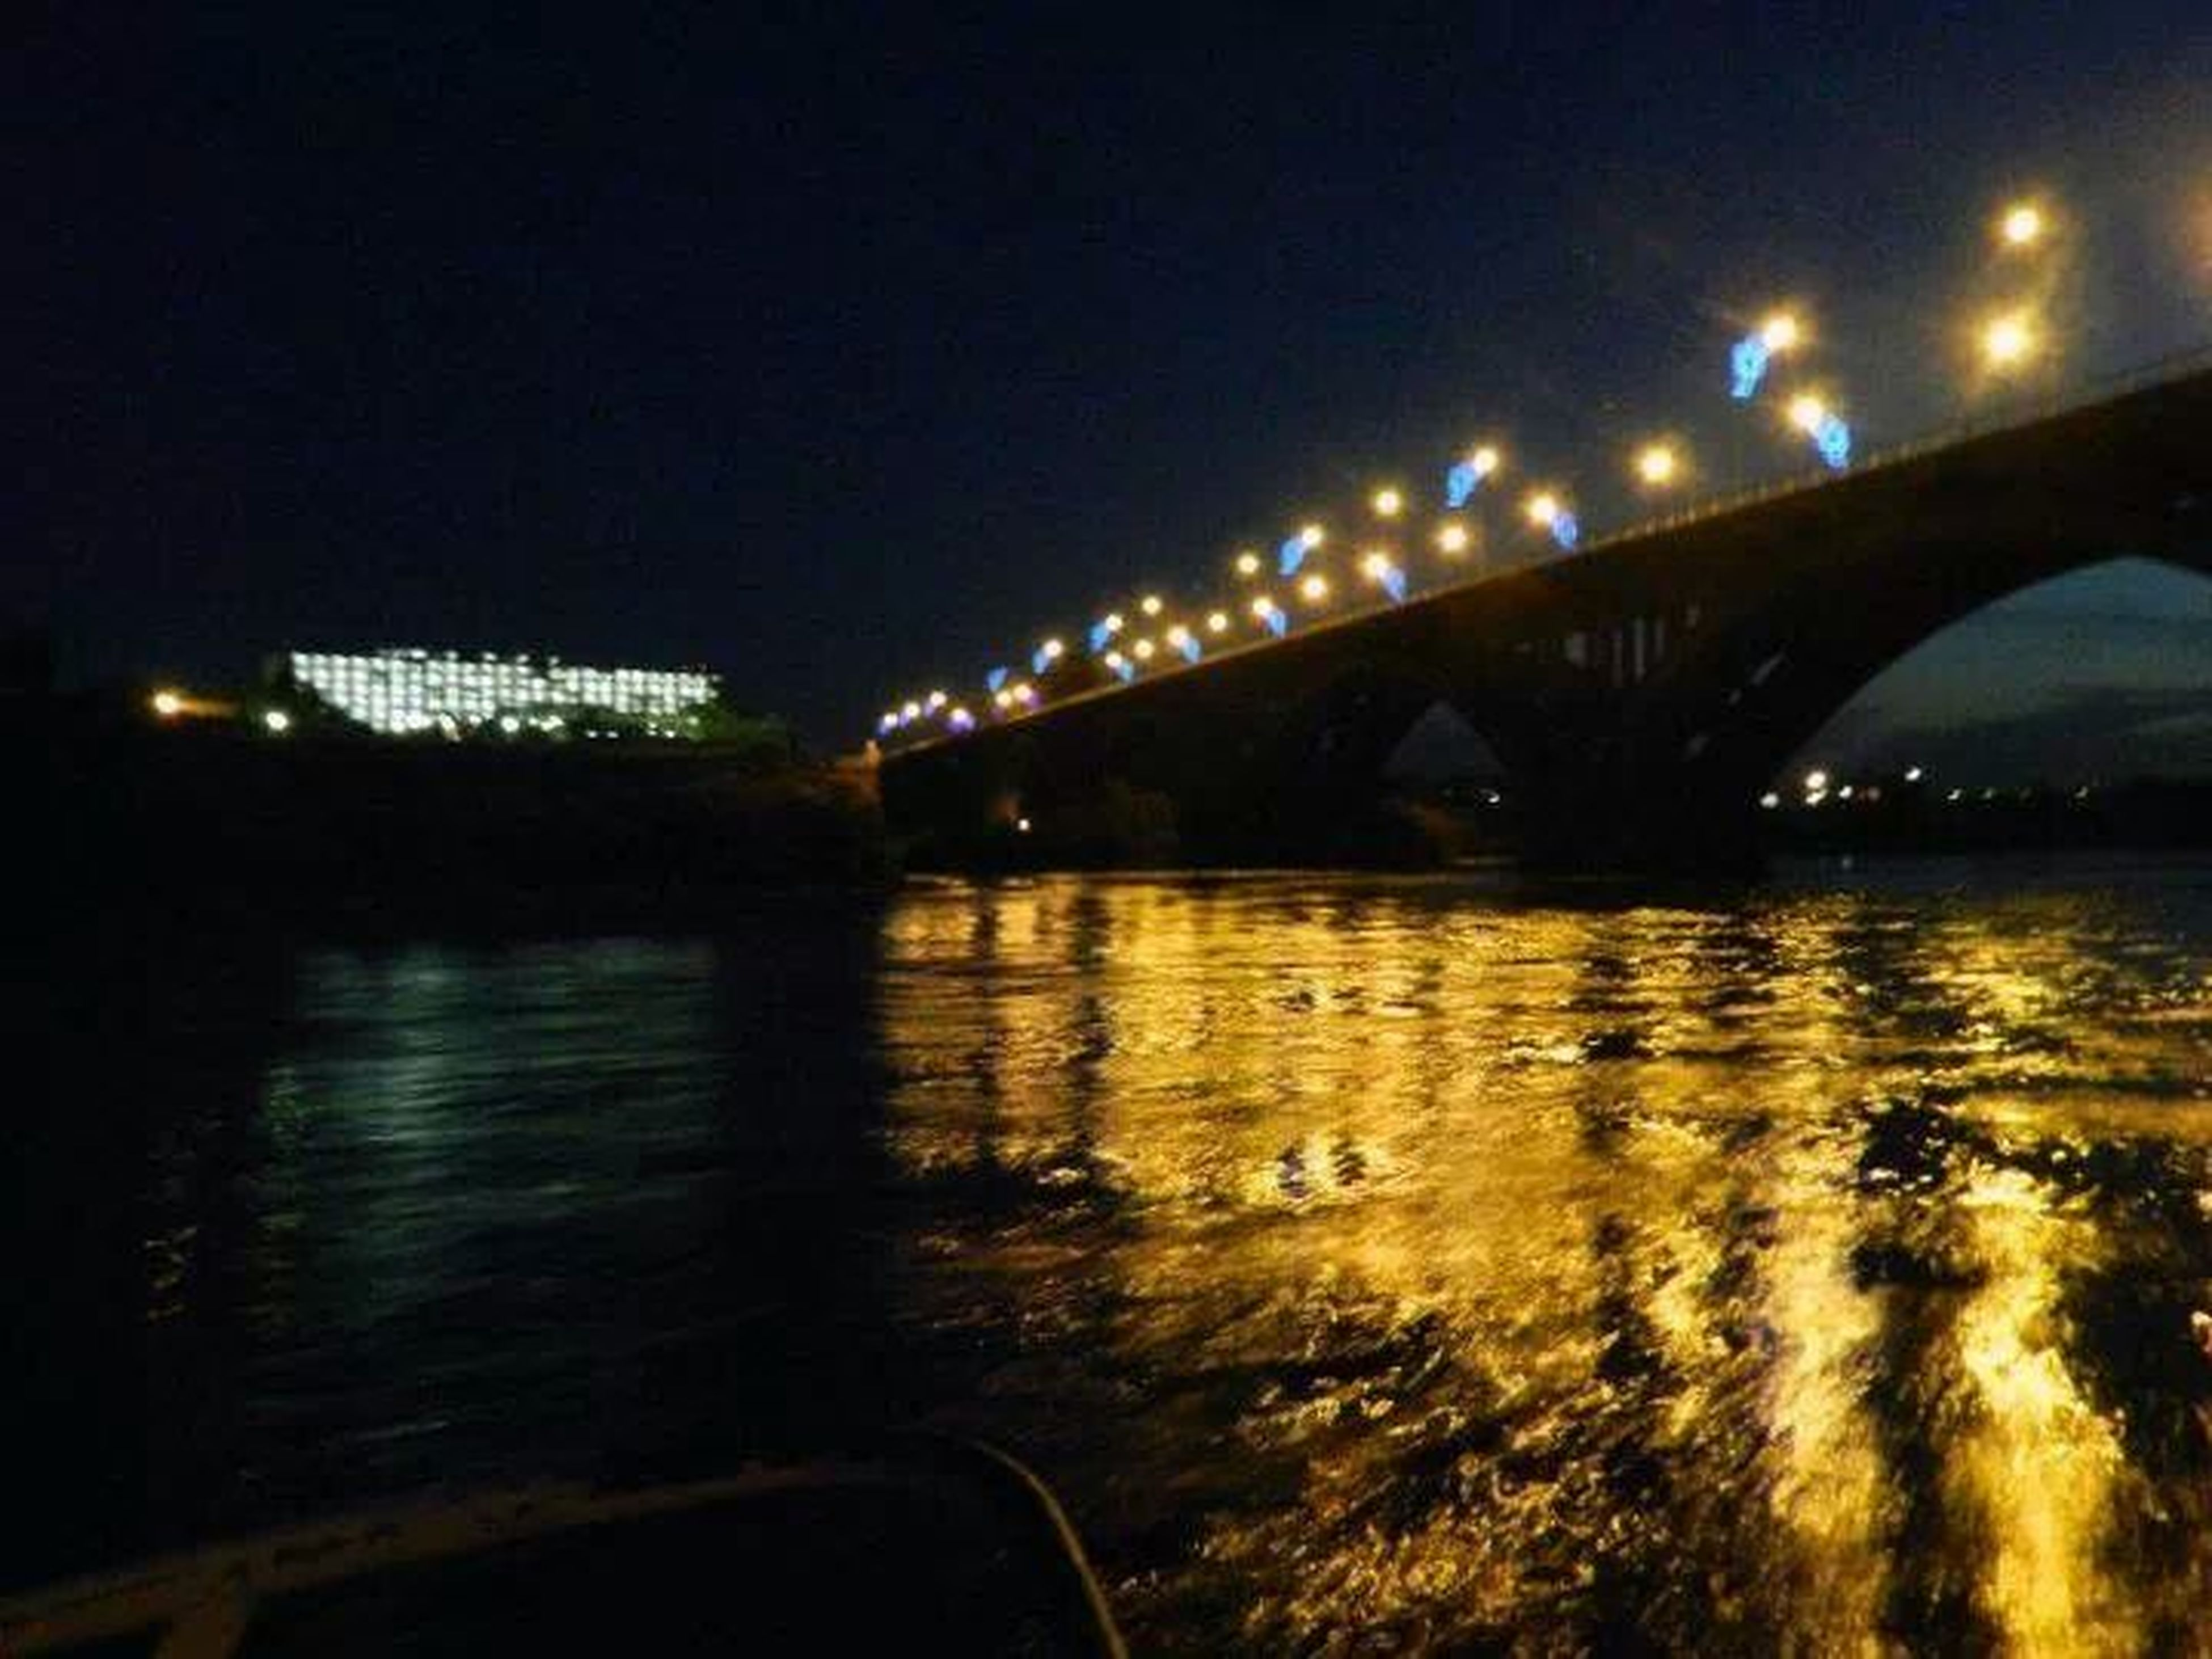 bridge - man made structure, connection, water, transportation, built structure, illuminated, bridge, architecture, river, engineering, night, reflection, arch bridge, arch, waterfront, sky, street light, clear sky, suspension bridge, outdoors